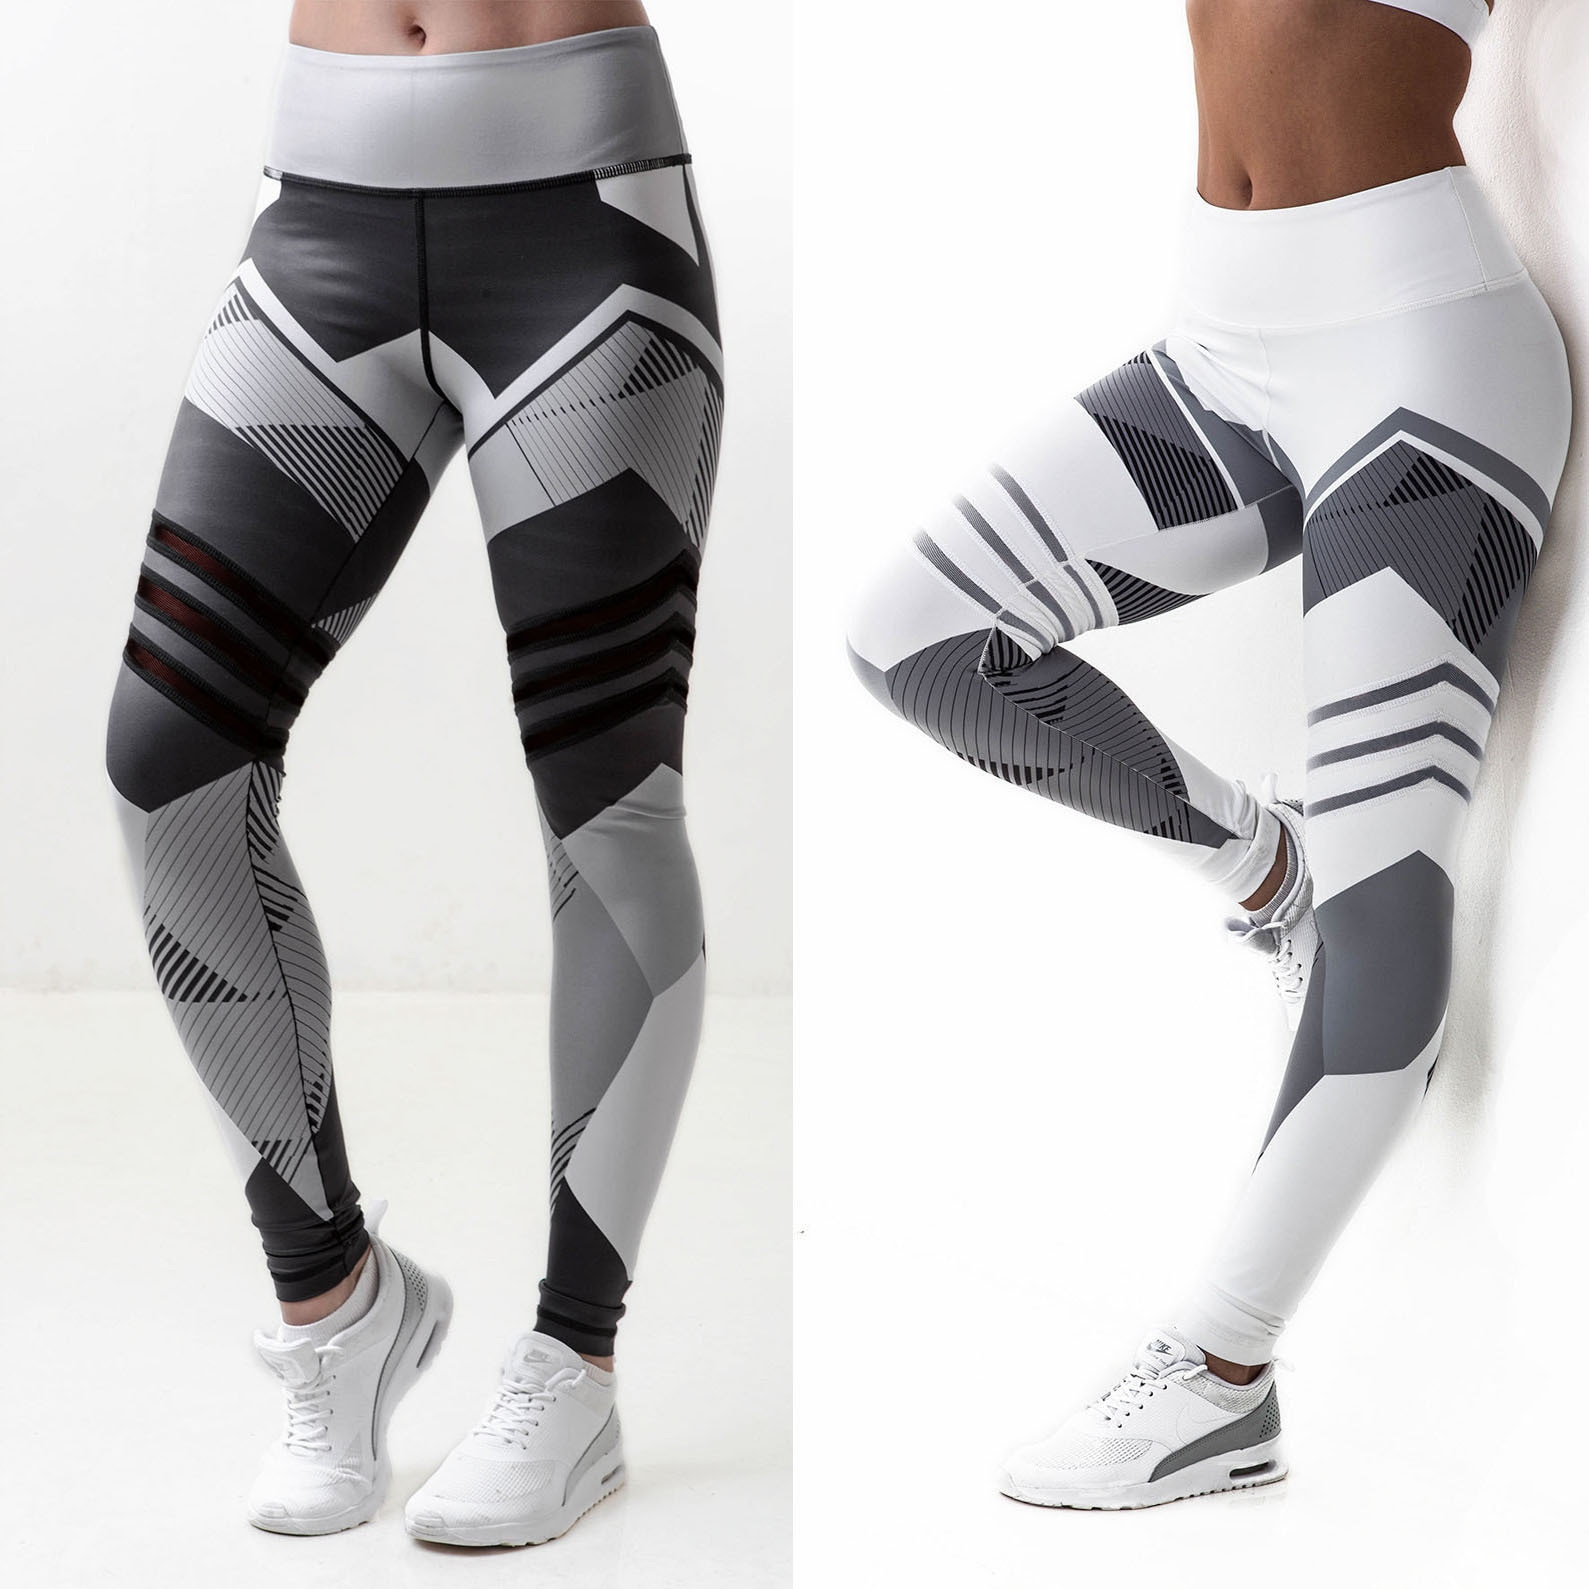 Women's Sports Pans Yoga Seamless Leggings Sweatpants Athletic Exercise Legging Fitness Workout Jeggings Tights Push Up Pants